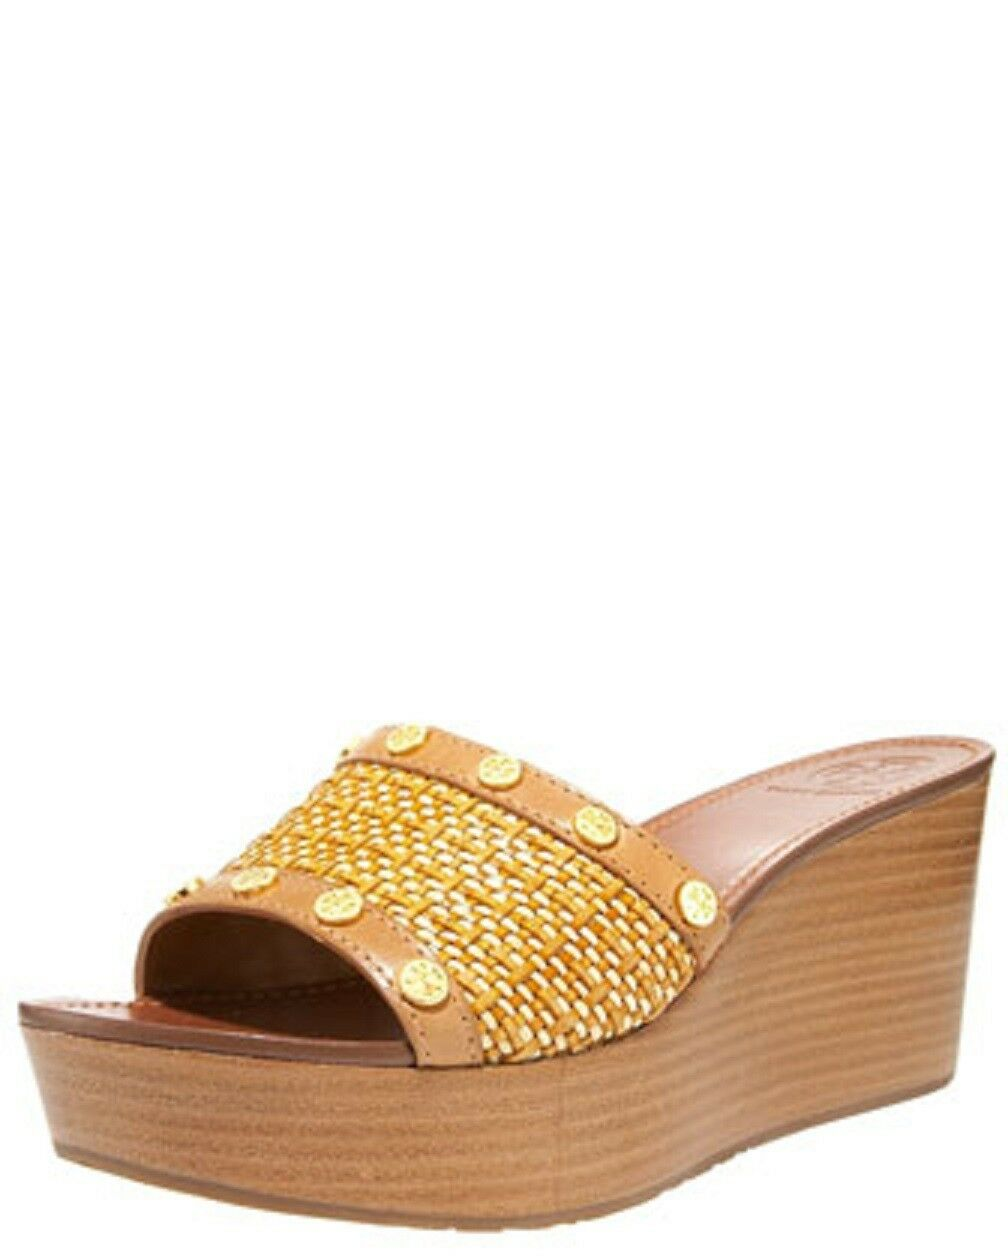 Tory Burch 'Joanie' Cuña (mujeres) M, tan real natural